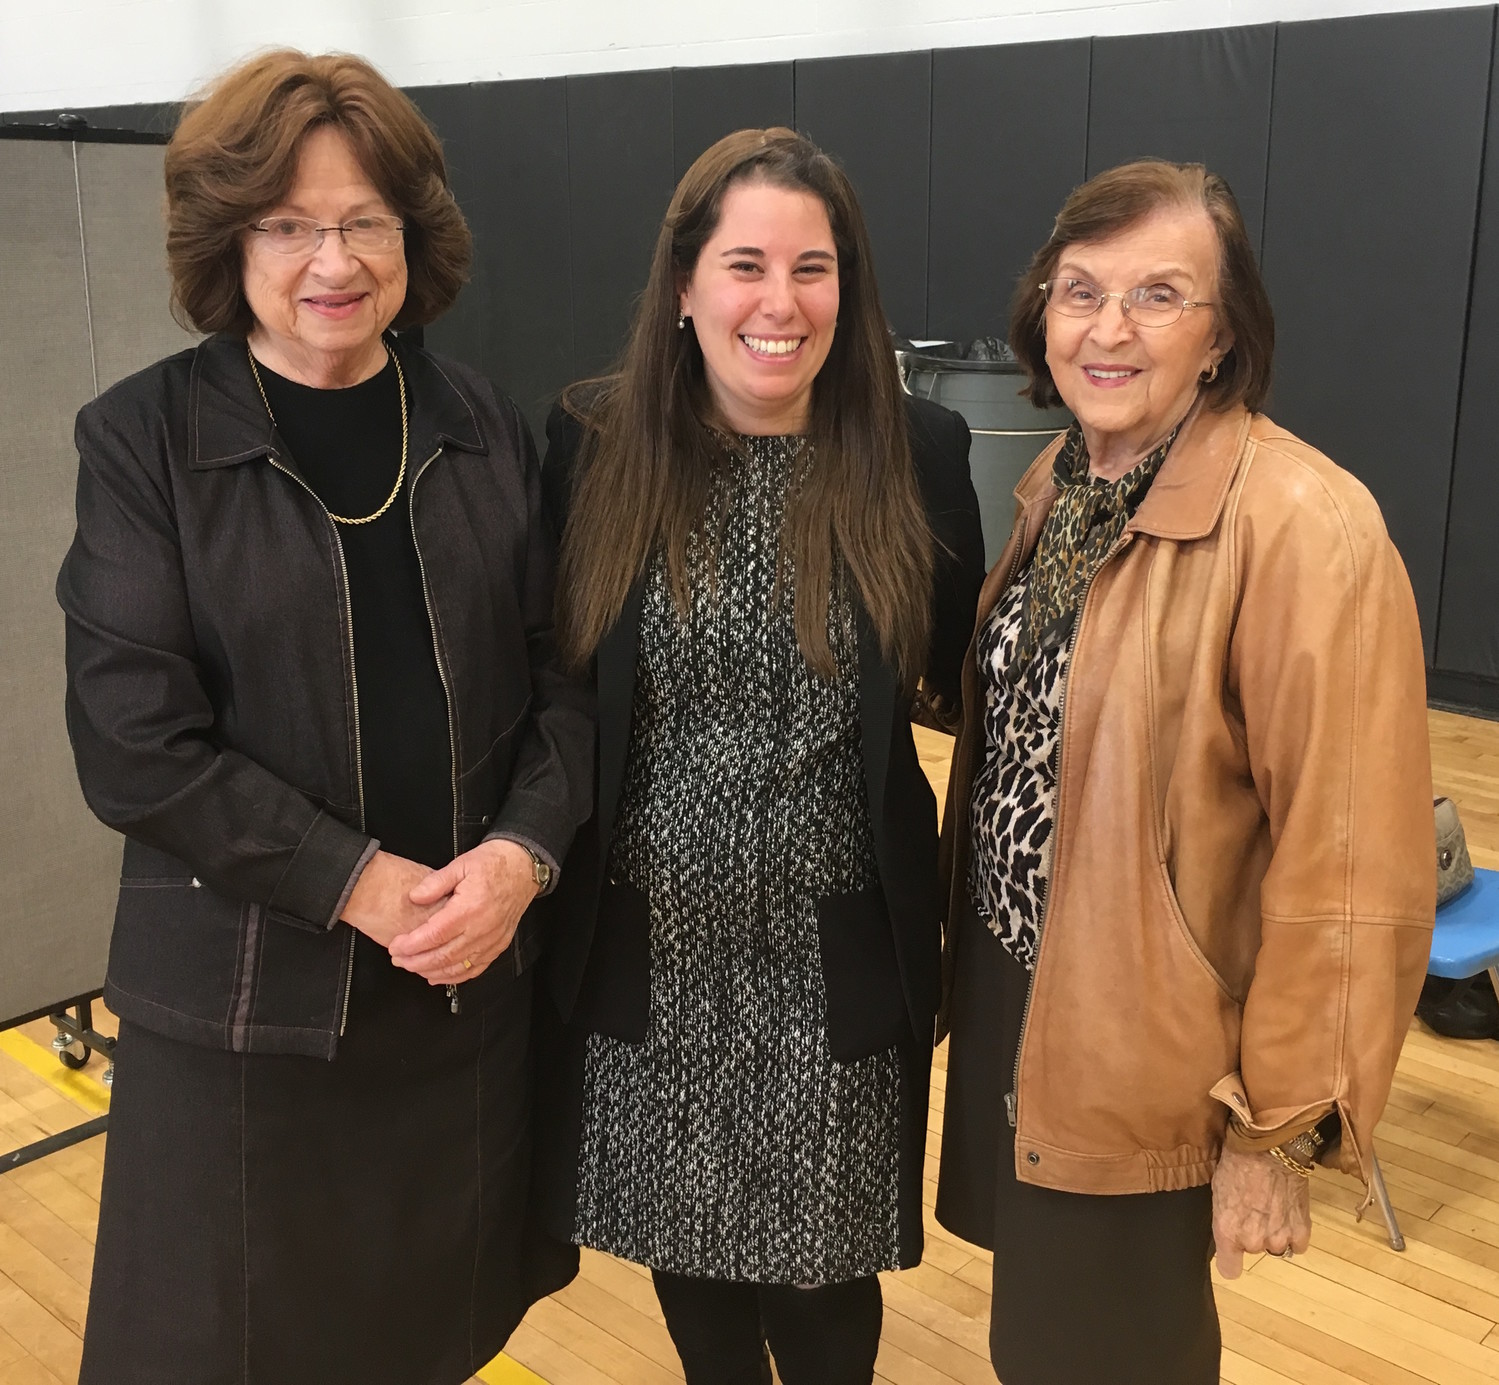 From left at HANC's Middle School: Mrs. Gottesman, Mrs. Liz Pazornick (development director), and Mrs. Lichtman.